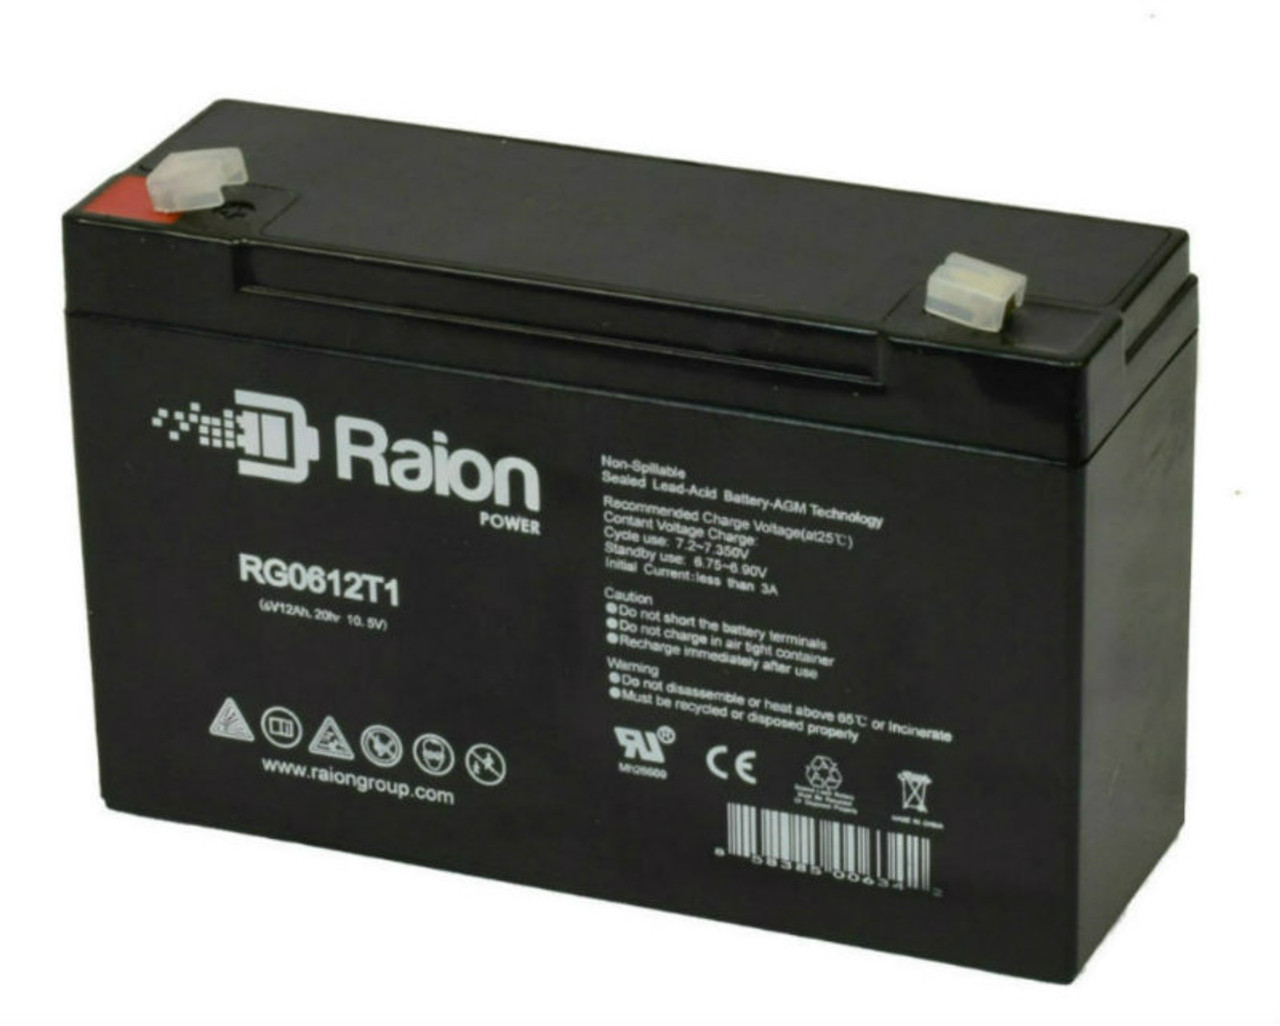 Raion Power RG06120T1 Replacement Battery Pack for Edwards 1604 emergency light